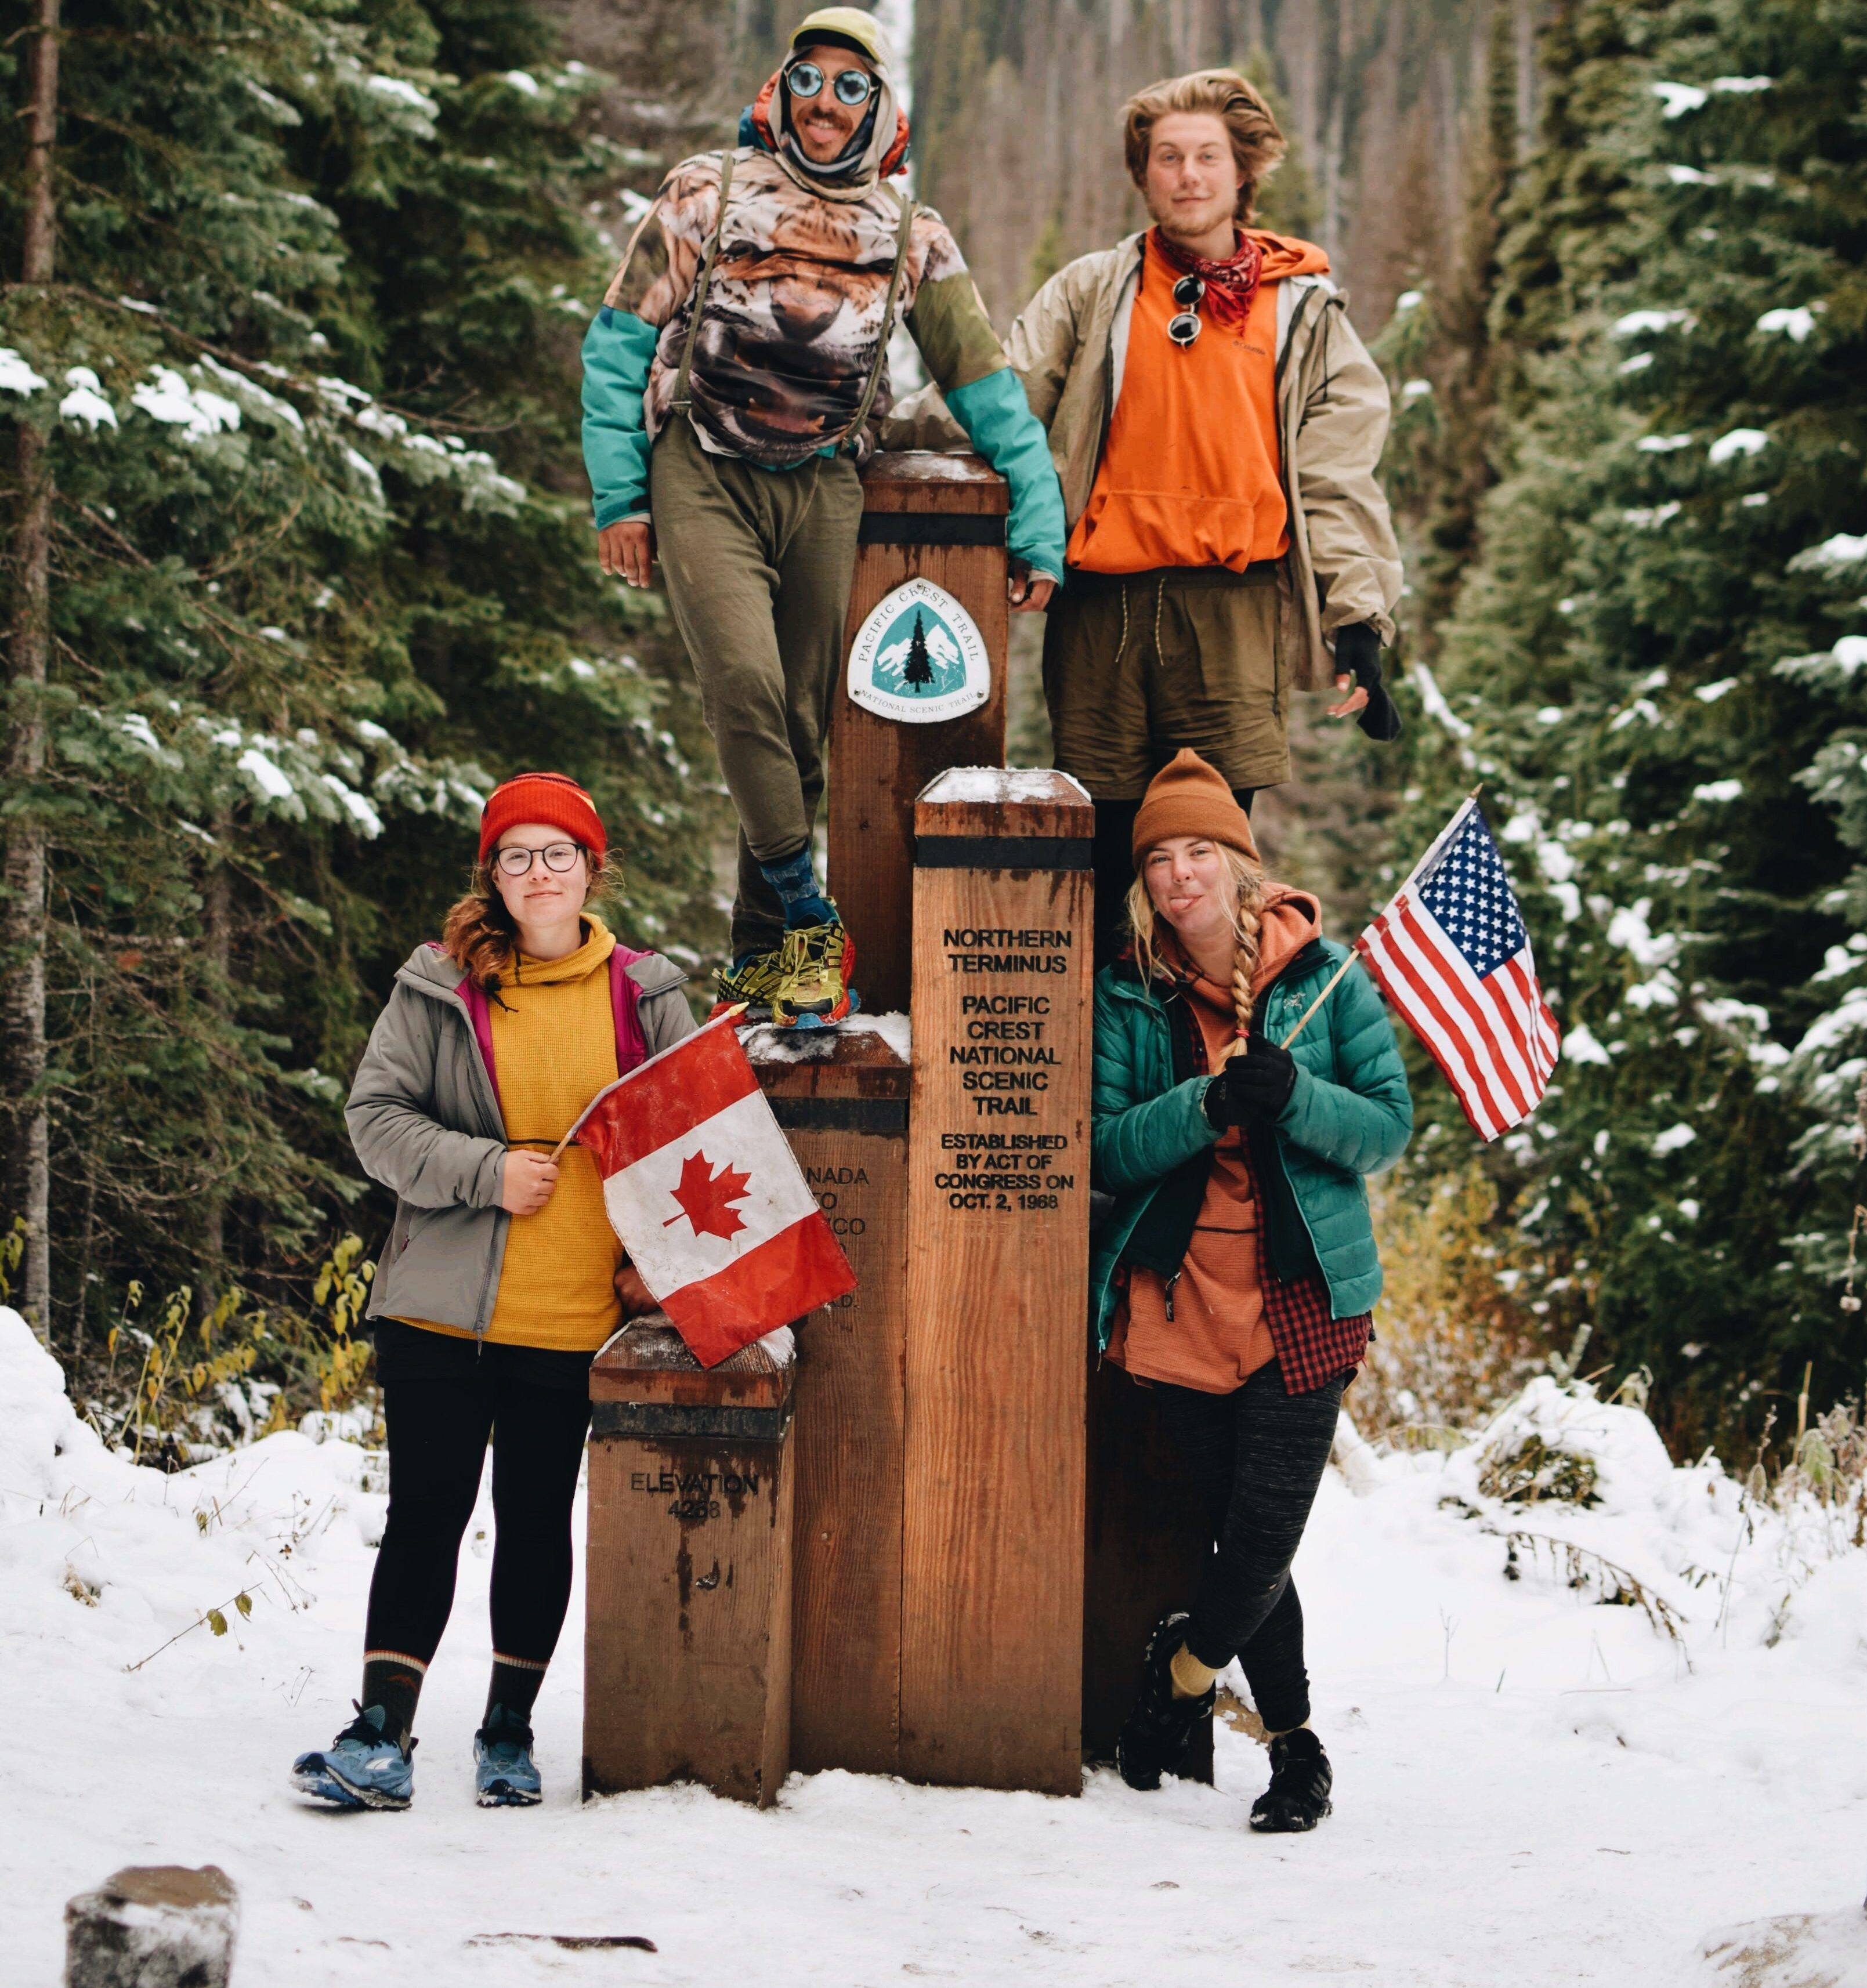 Congrats to These 2019 Pacific Crest Trail Thru-Hikers: October 17 - November 13 - The Trek